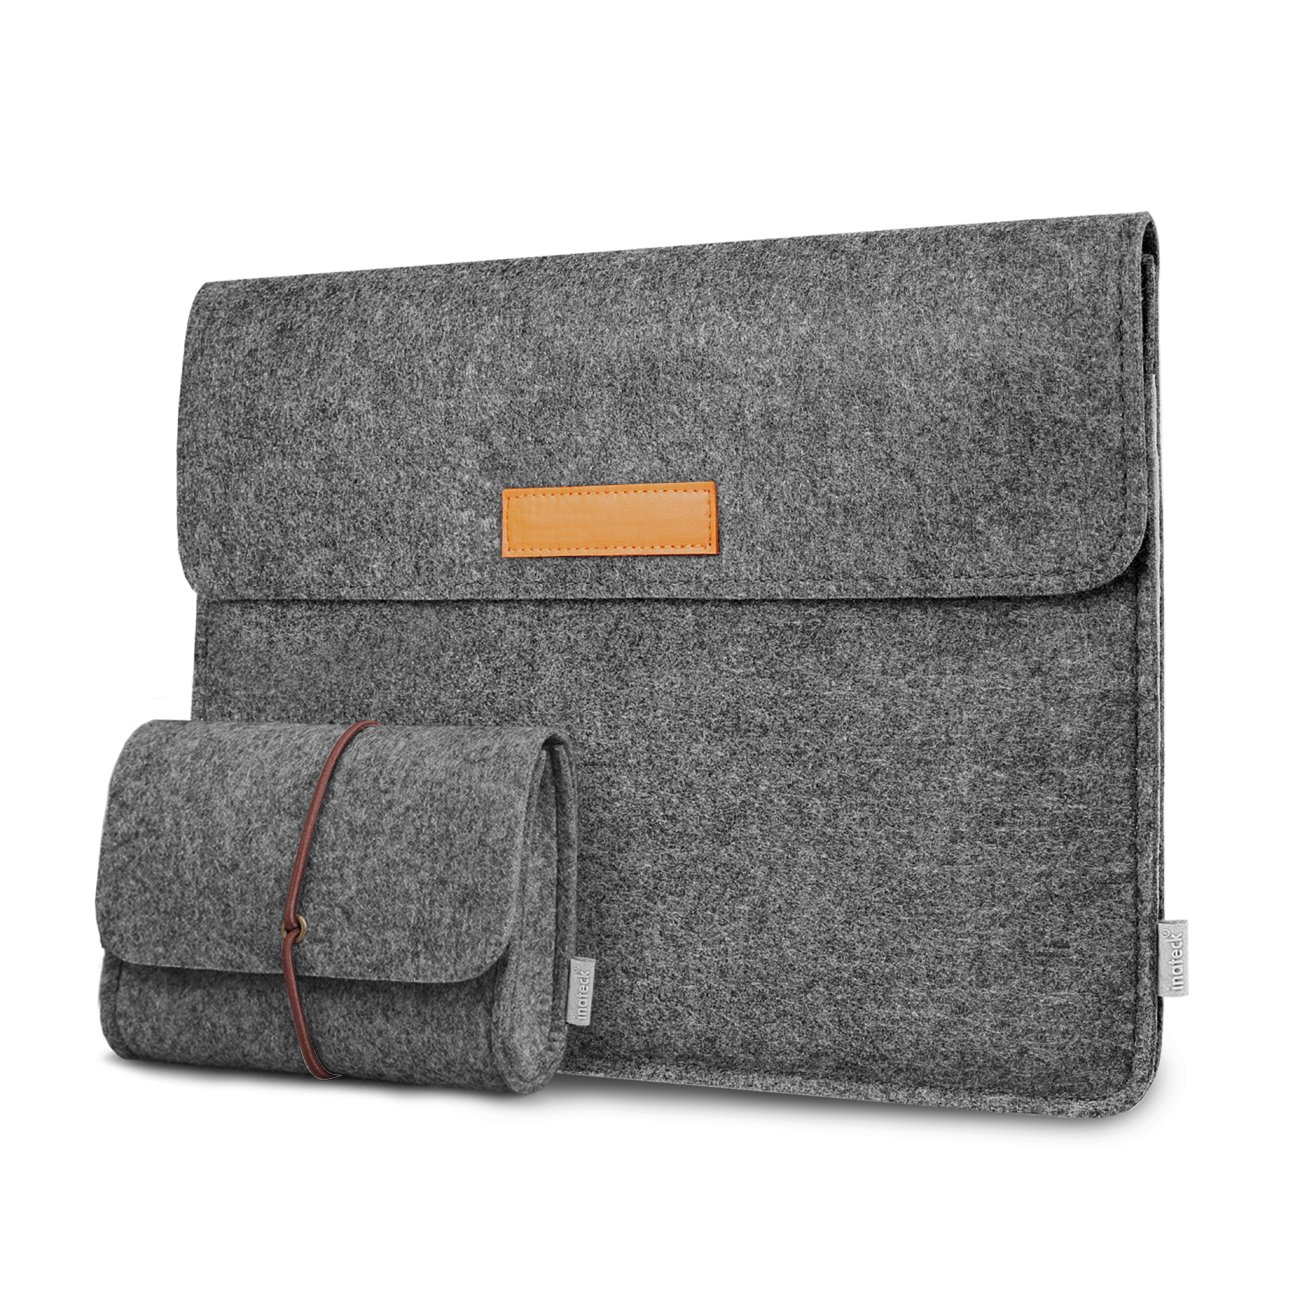 Inateck 12.3-13 Inch Laptop Sleeve Case Compatible 2018 MacBook Air, MacBook Pro 13'' 2019/2018/2017/2016 (A1989/A1706/A1708)/Microsoft Surface Pro 6/5/4/3 - Dark Gray by Inateck